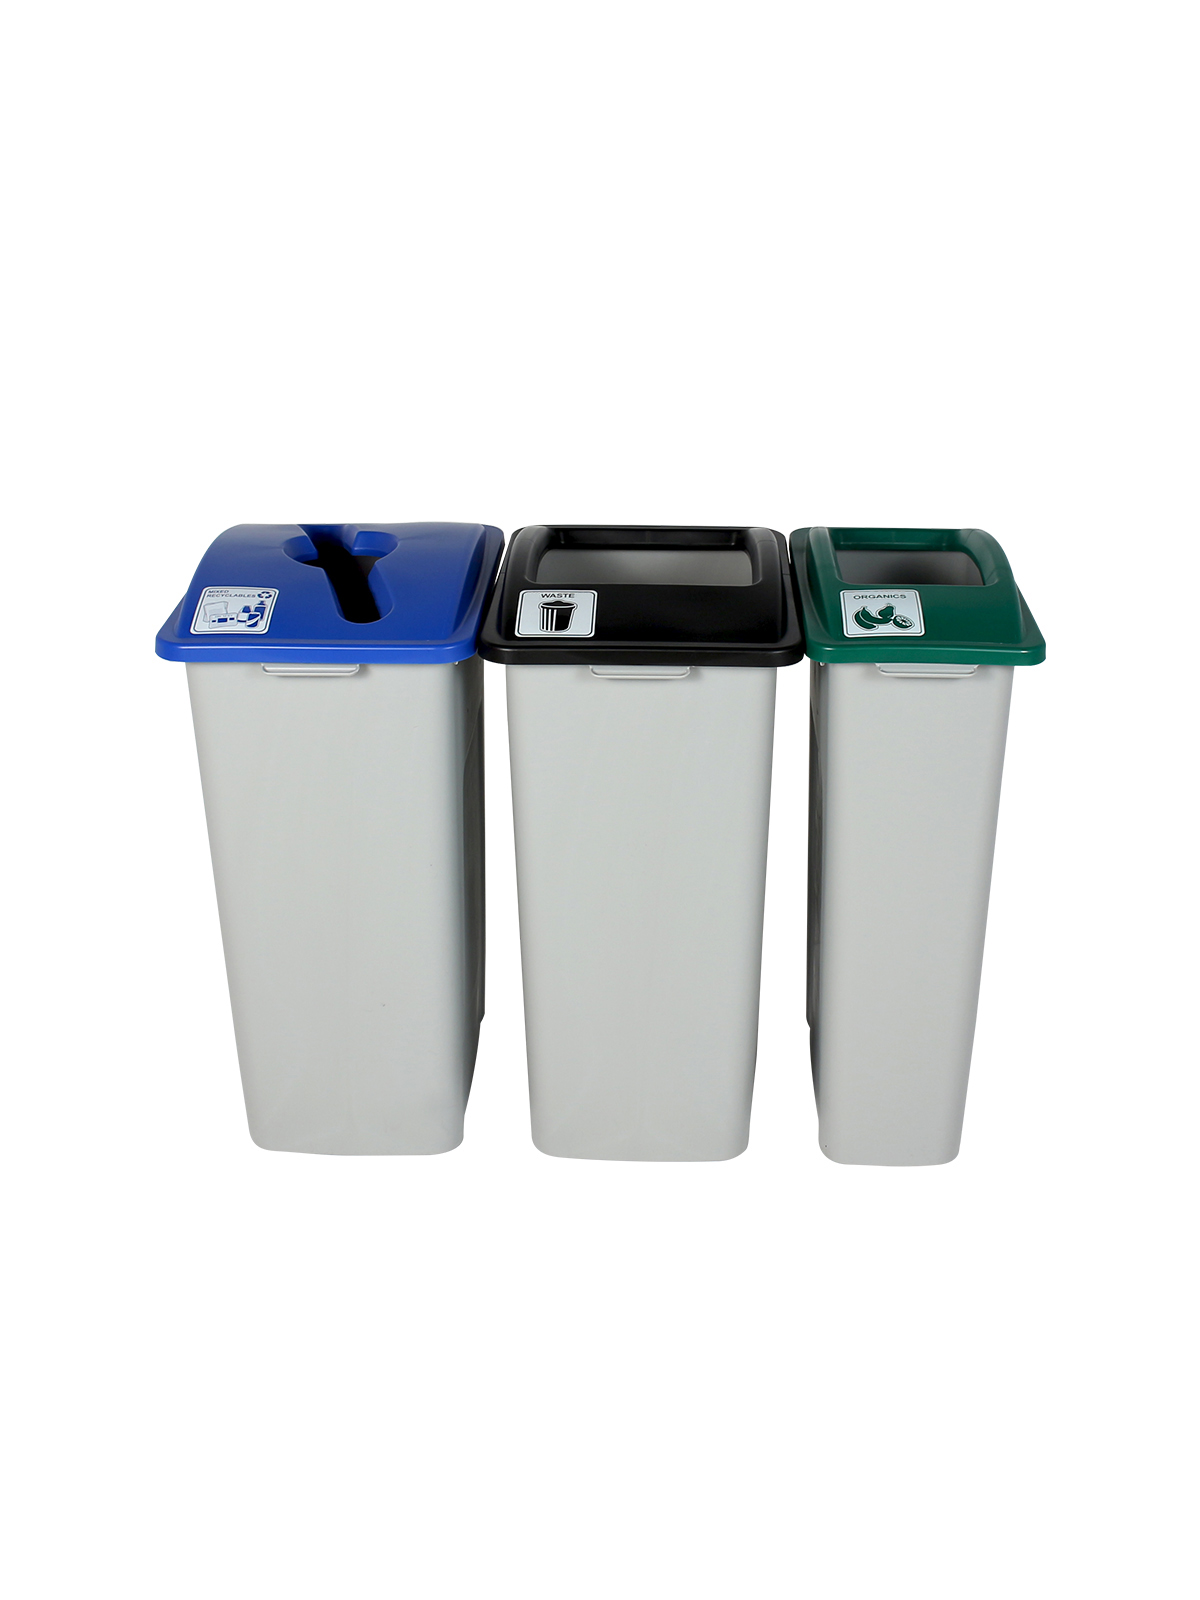 WASTE WATCHER XL - Triple - Mixed Recyclables-Organics-Waste - Mixed-Full - Grey-Blue-Green-Black